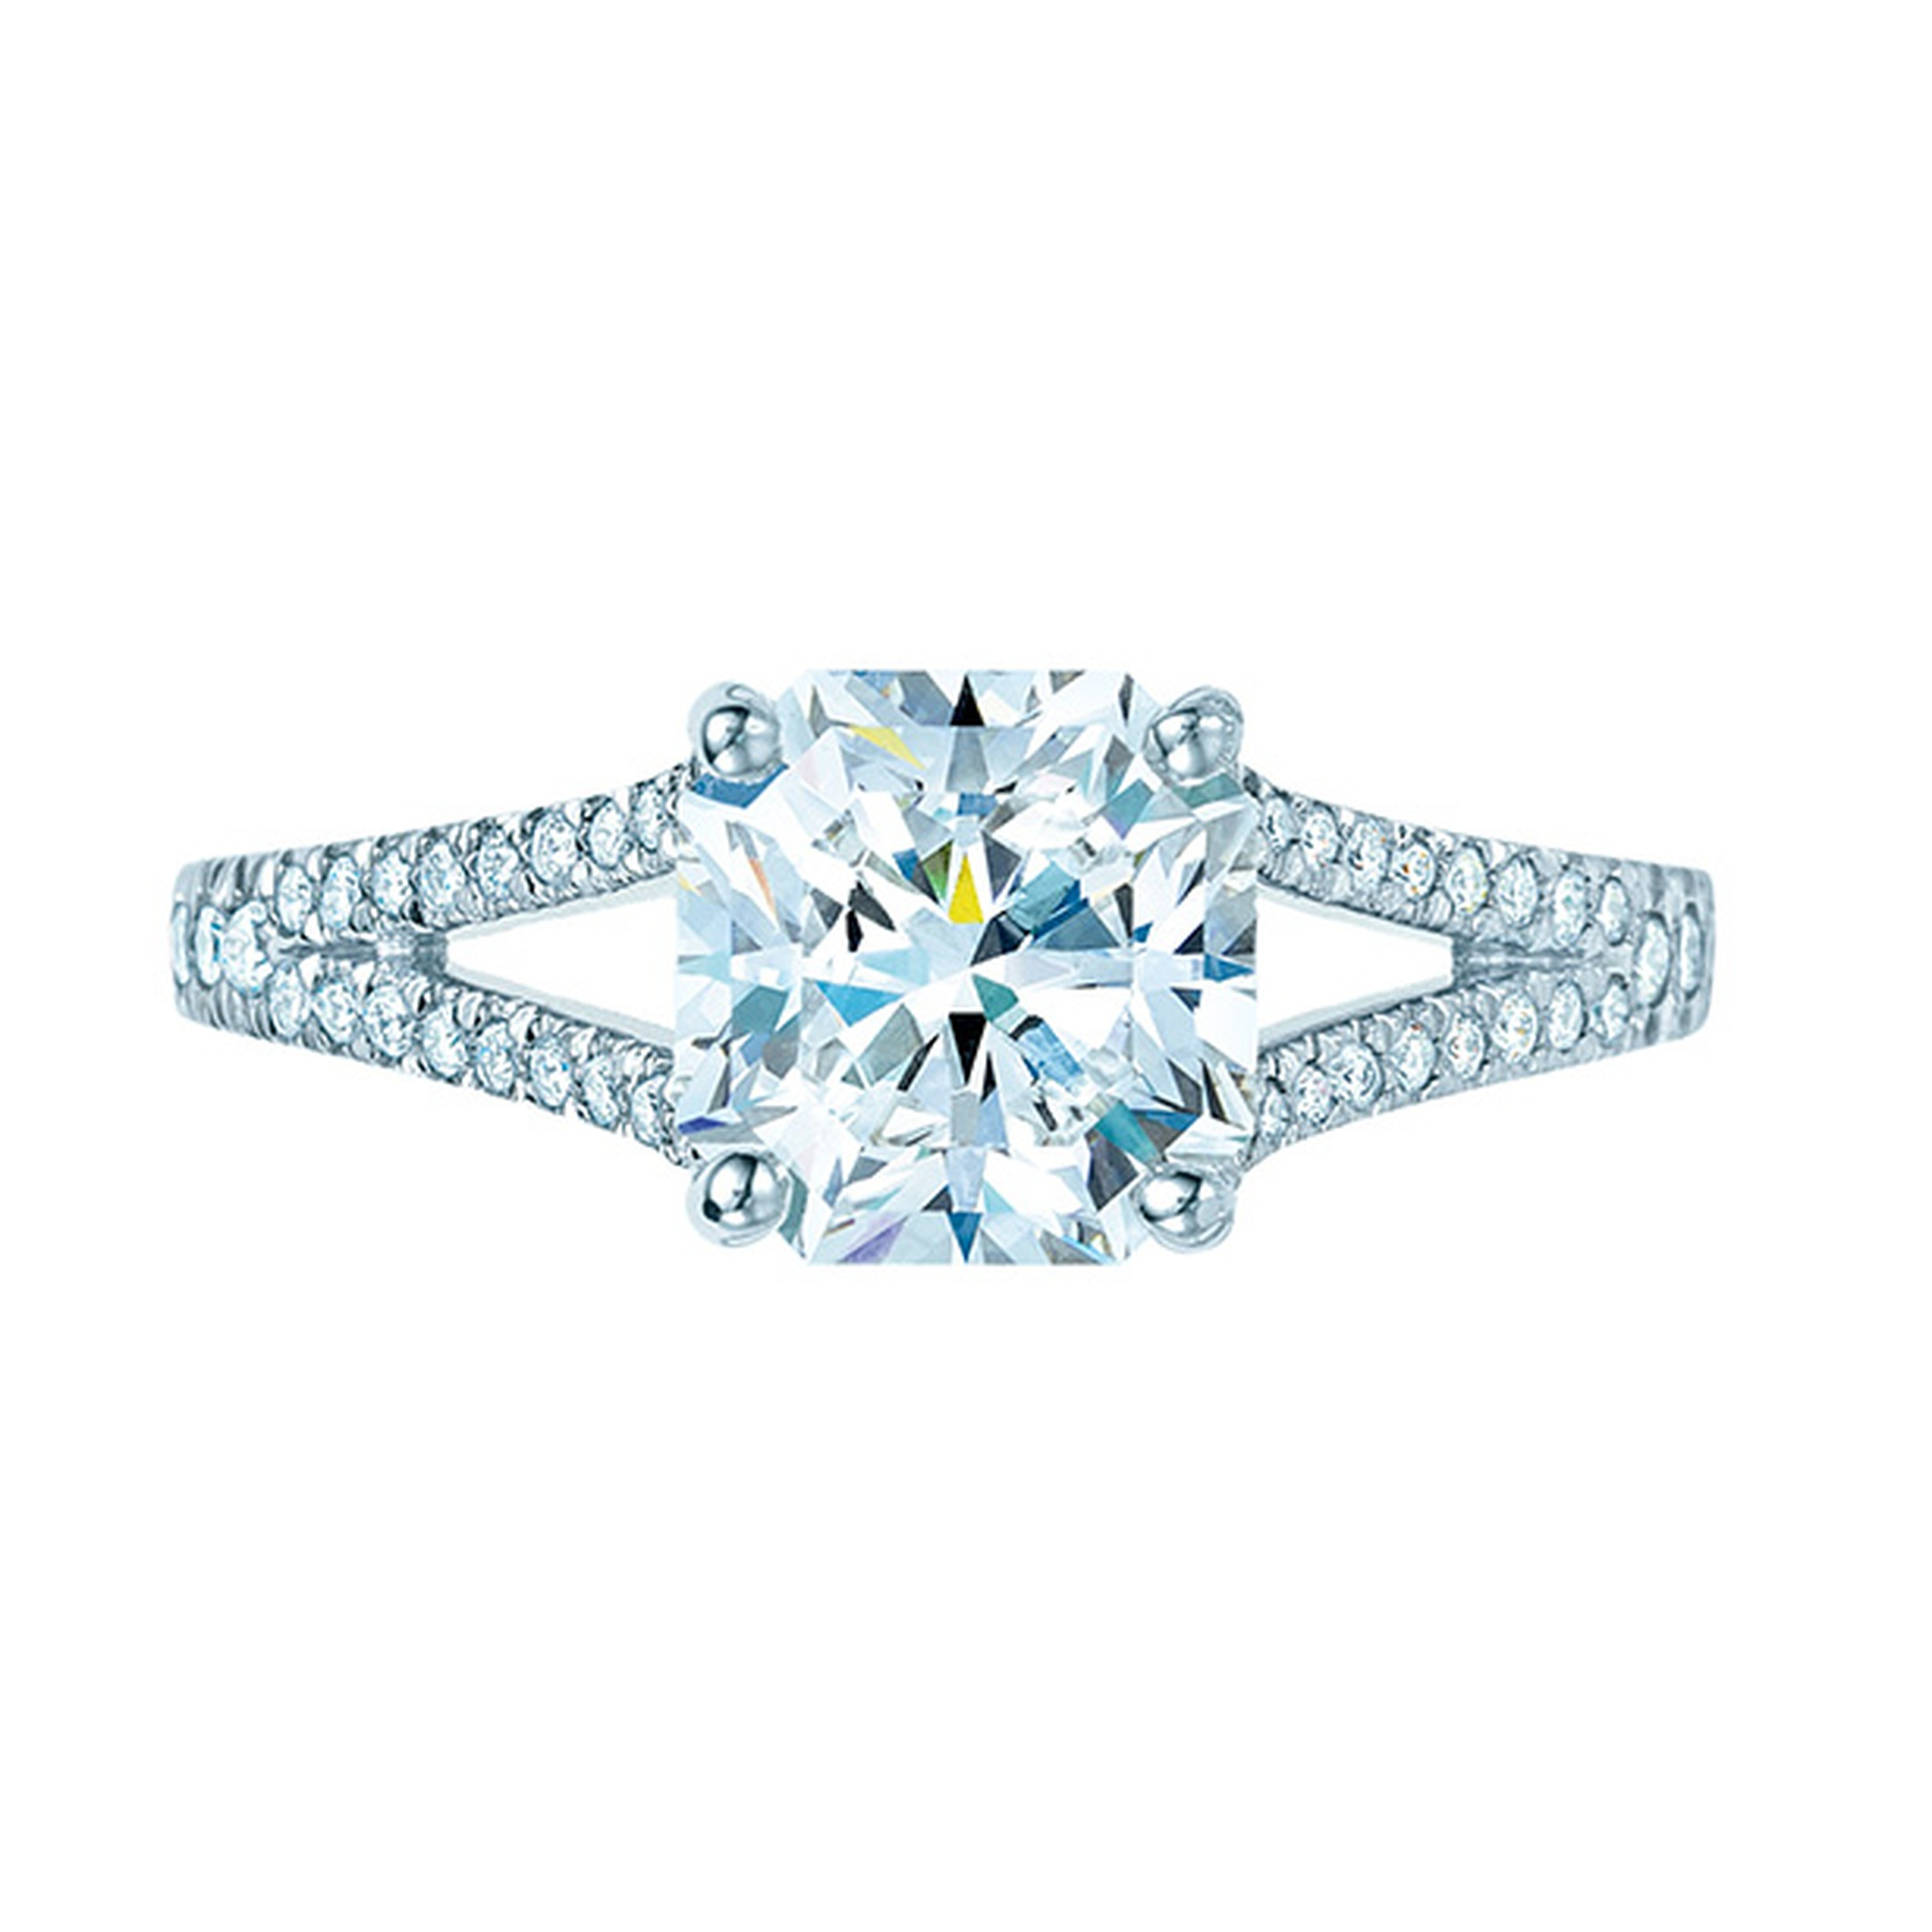 Tiffany Lucida solitaire diamond engagement ring